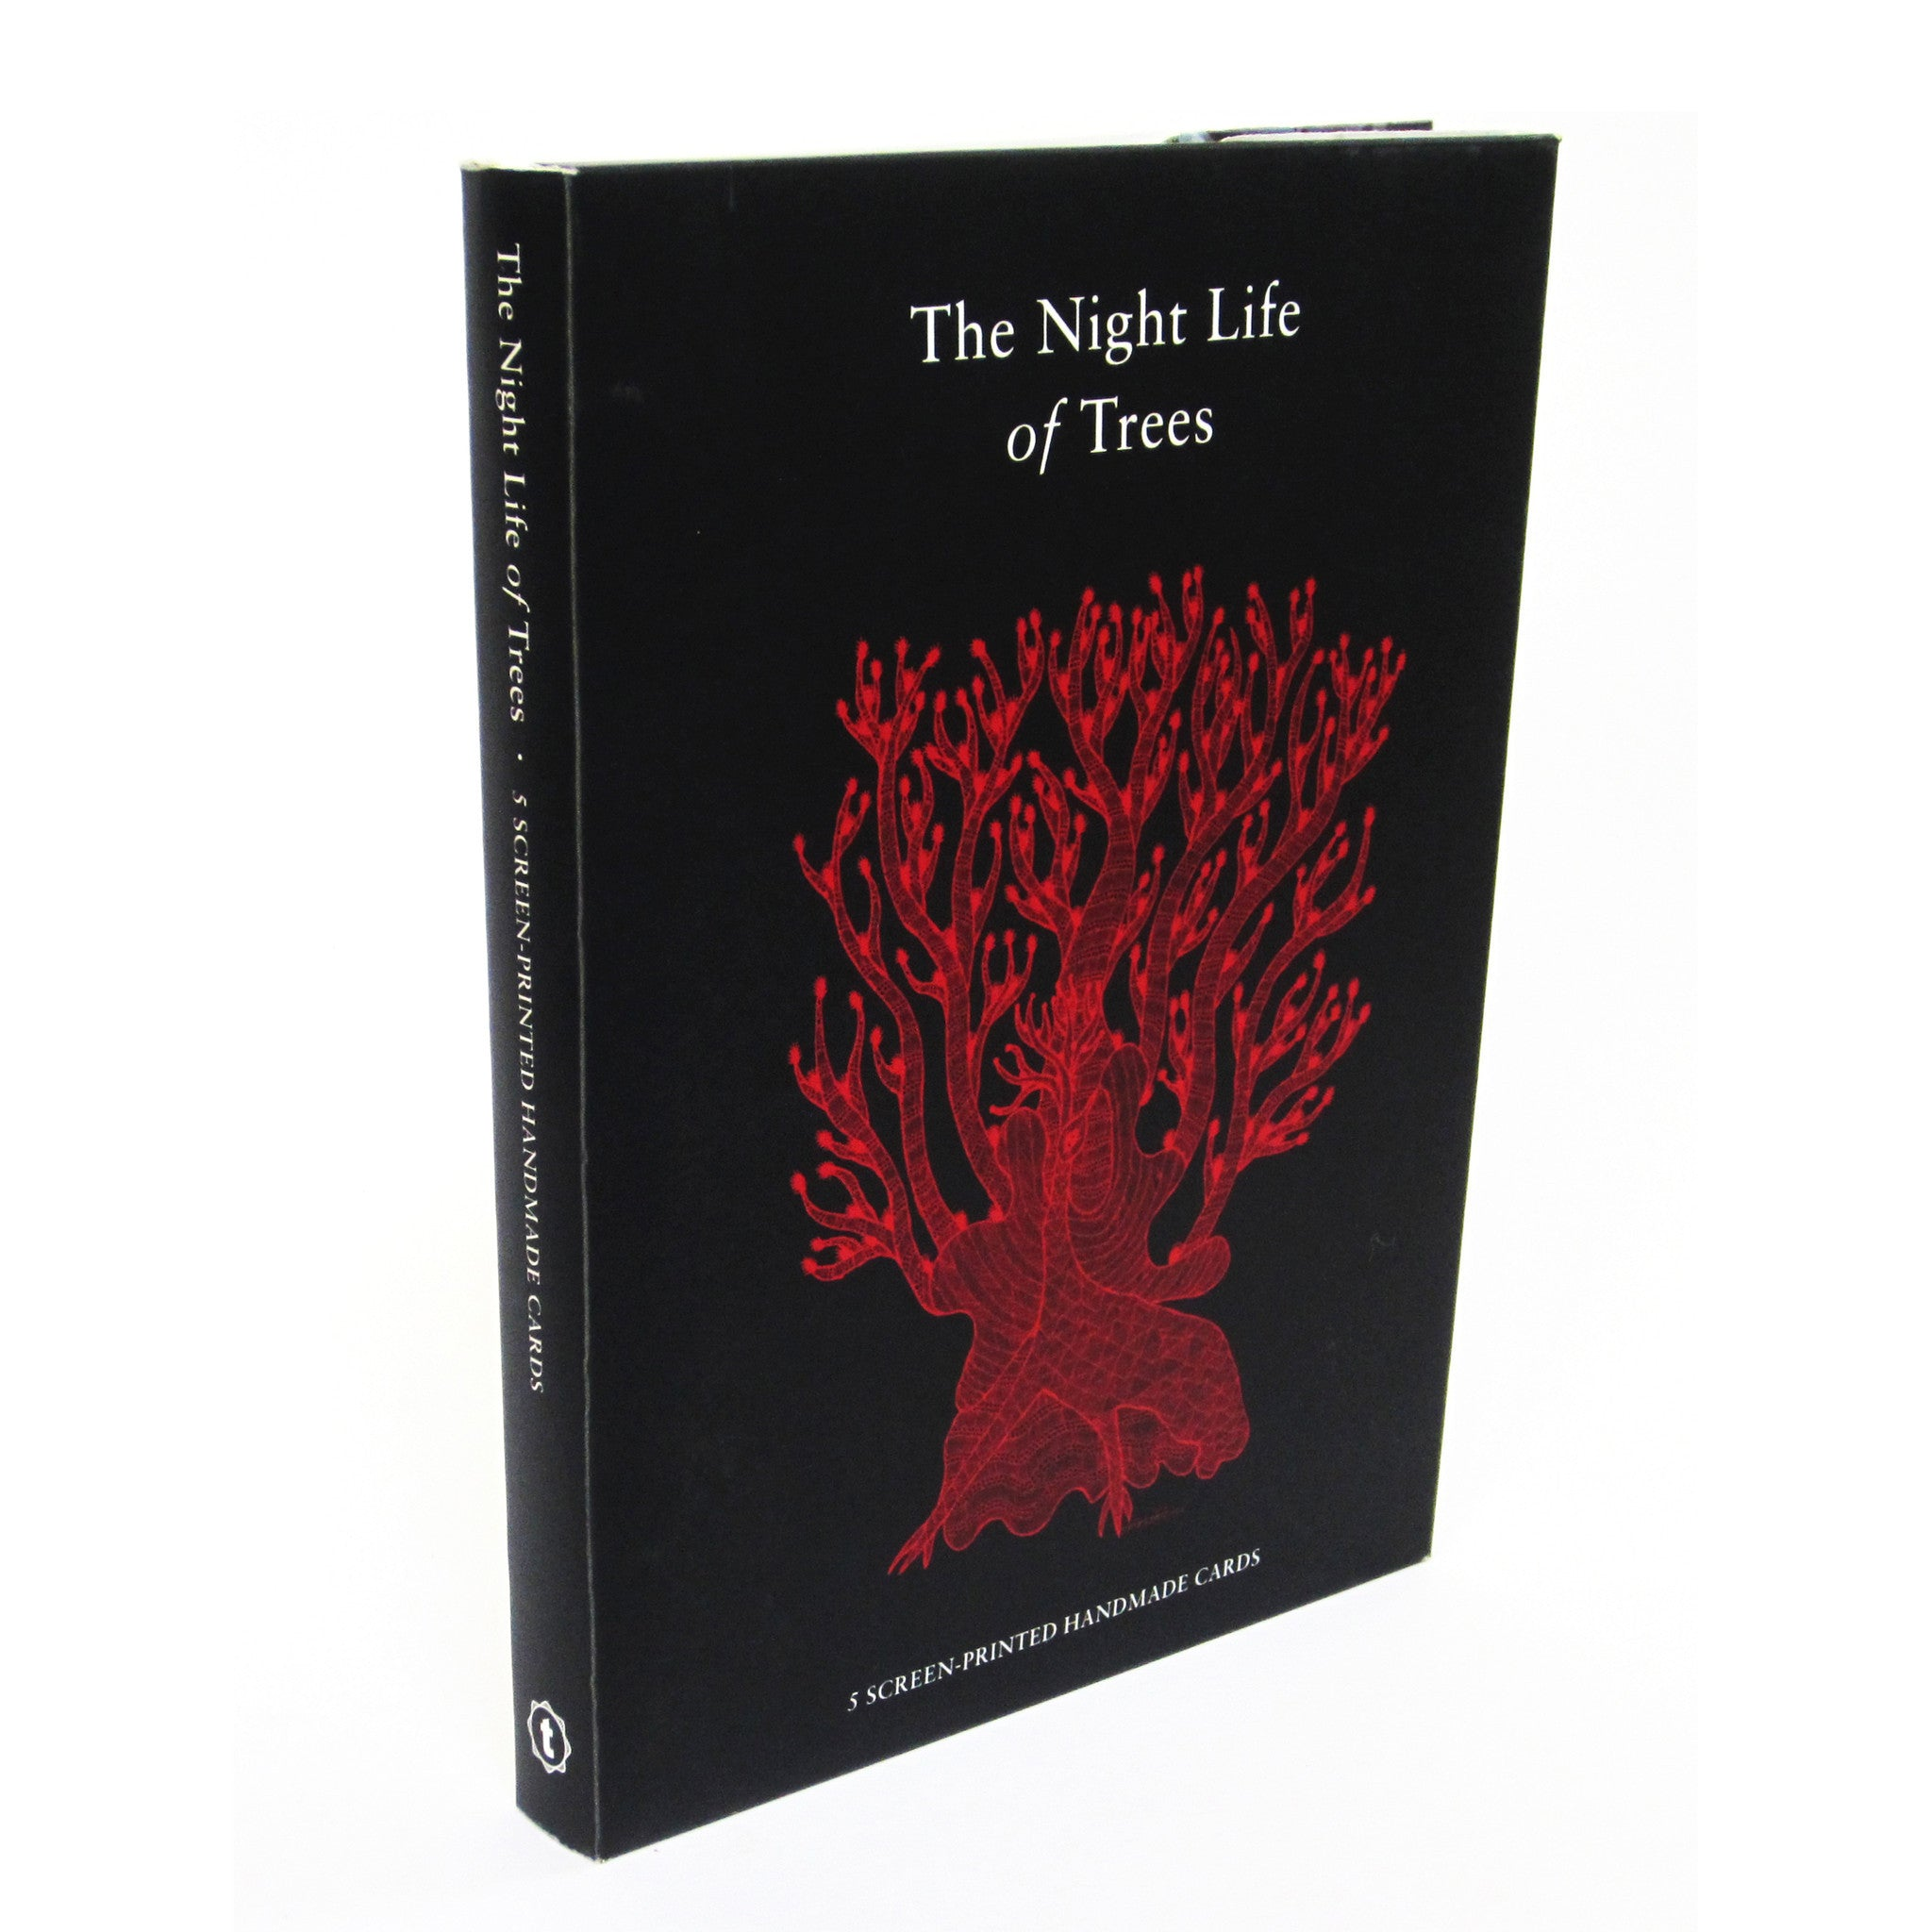 The Night Life of Trees - 10 Fairtrade Handmade Cards